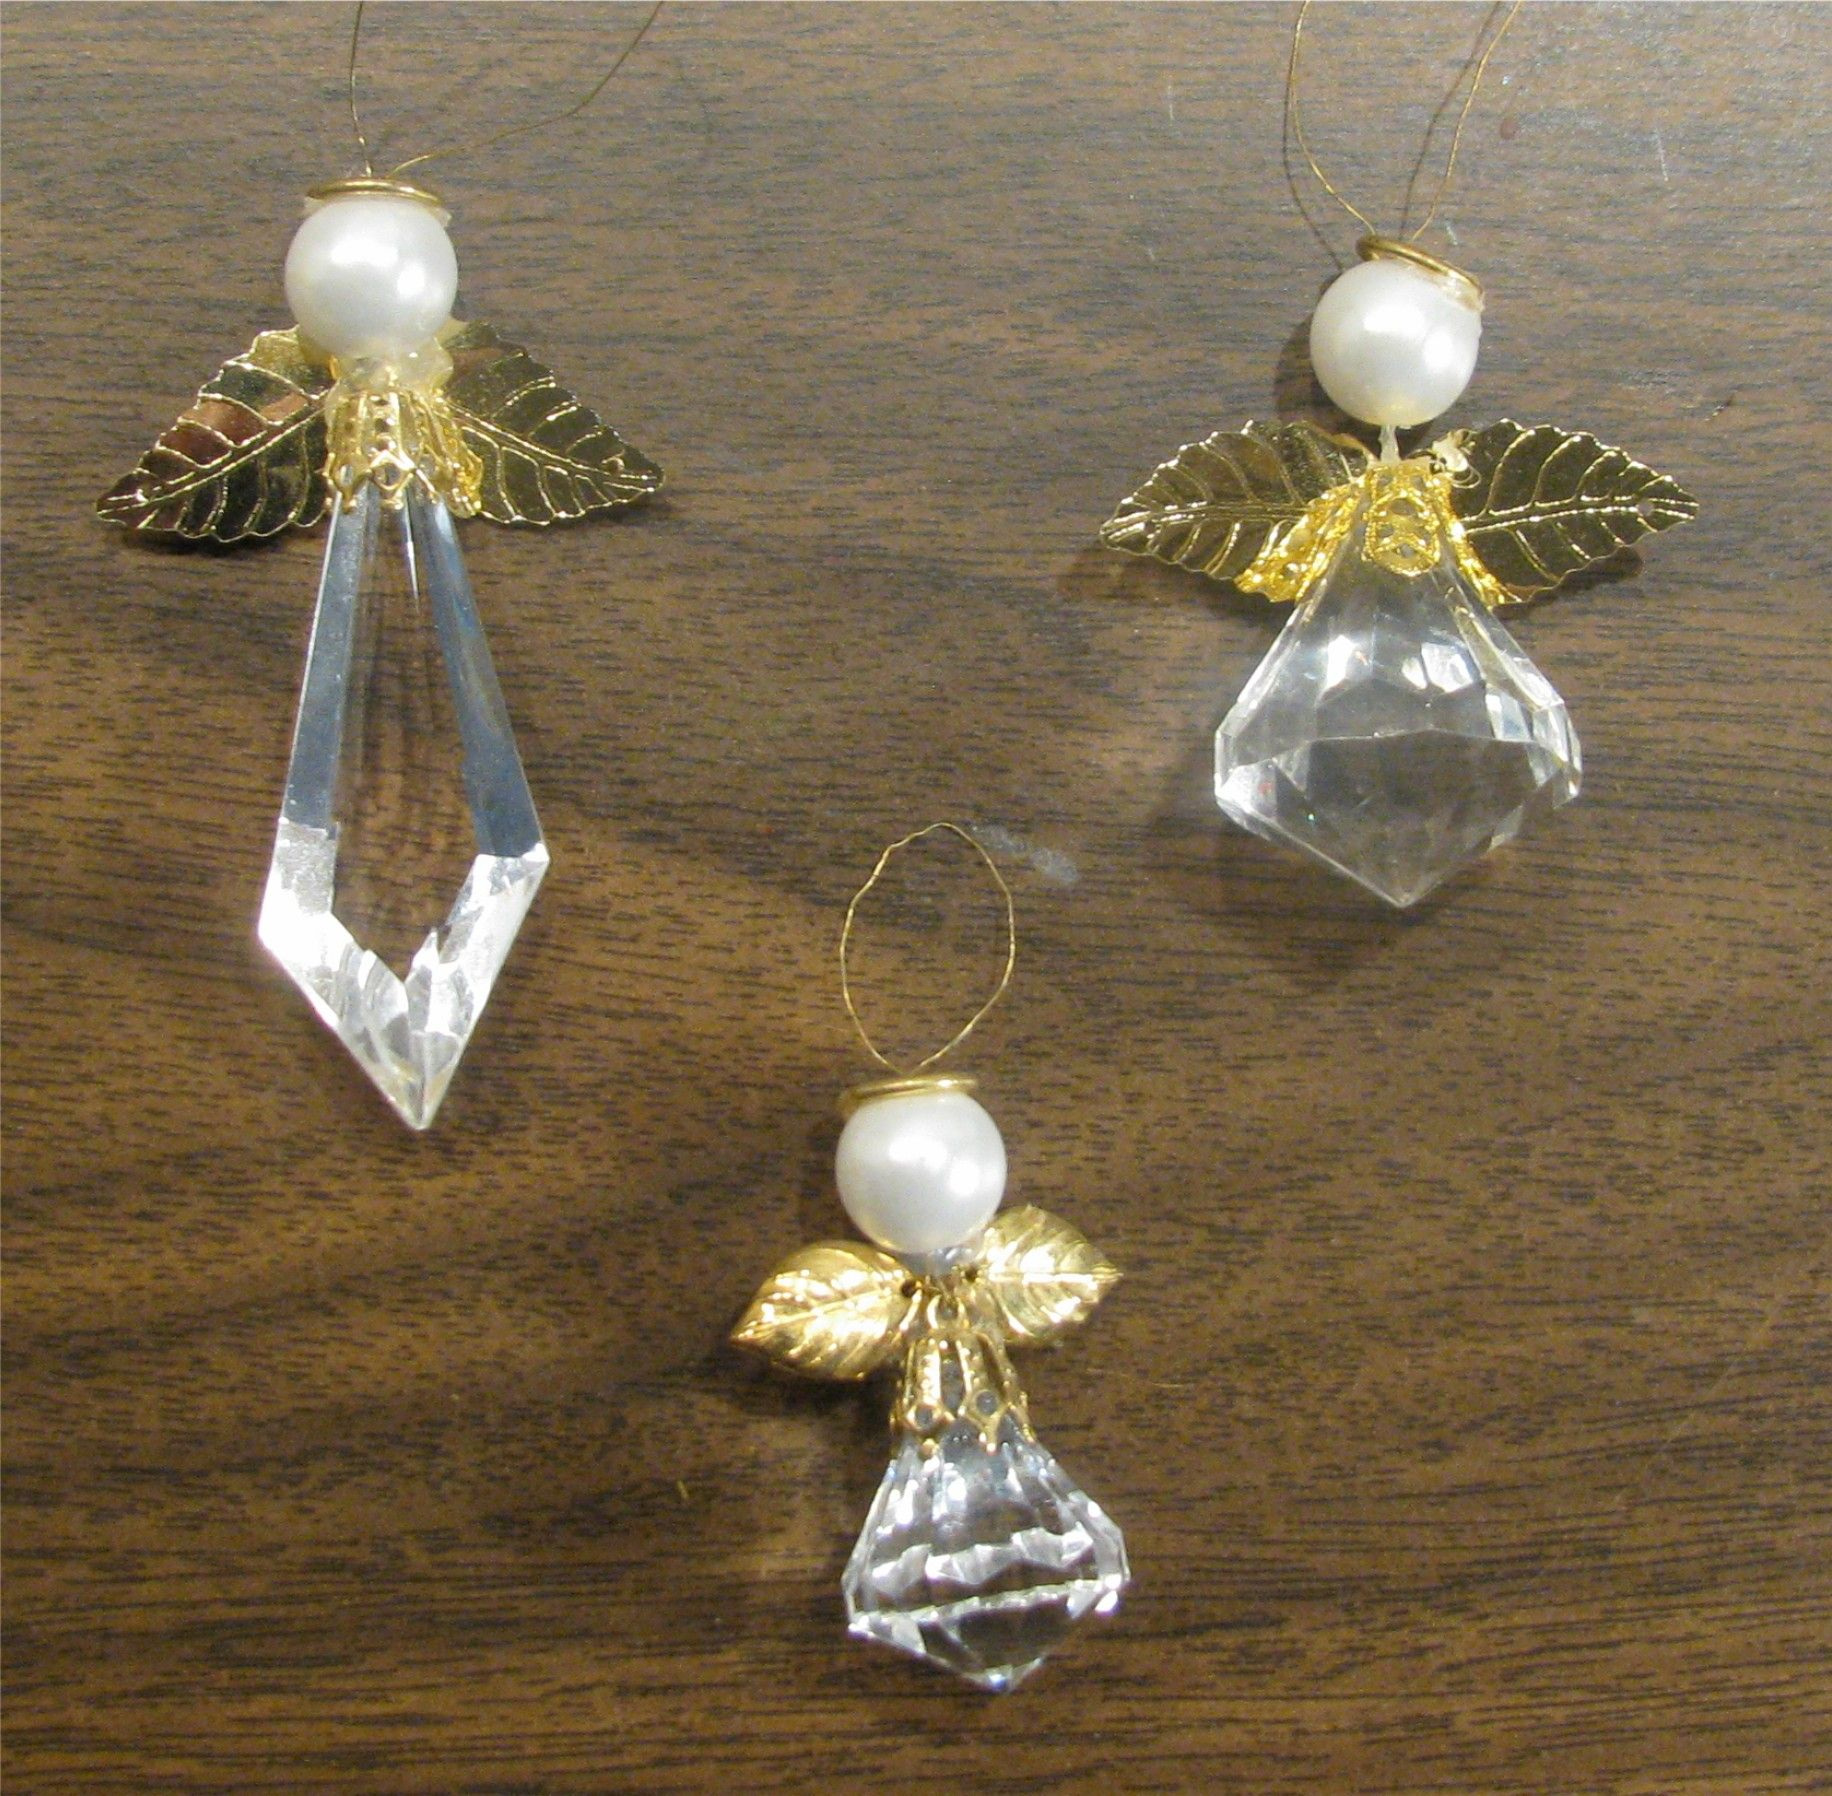 Crystal Bead Angels Mom Or Myself Beaded Angels Angel Ornaments Angel Crafts